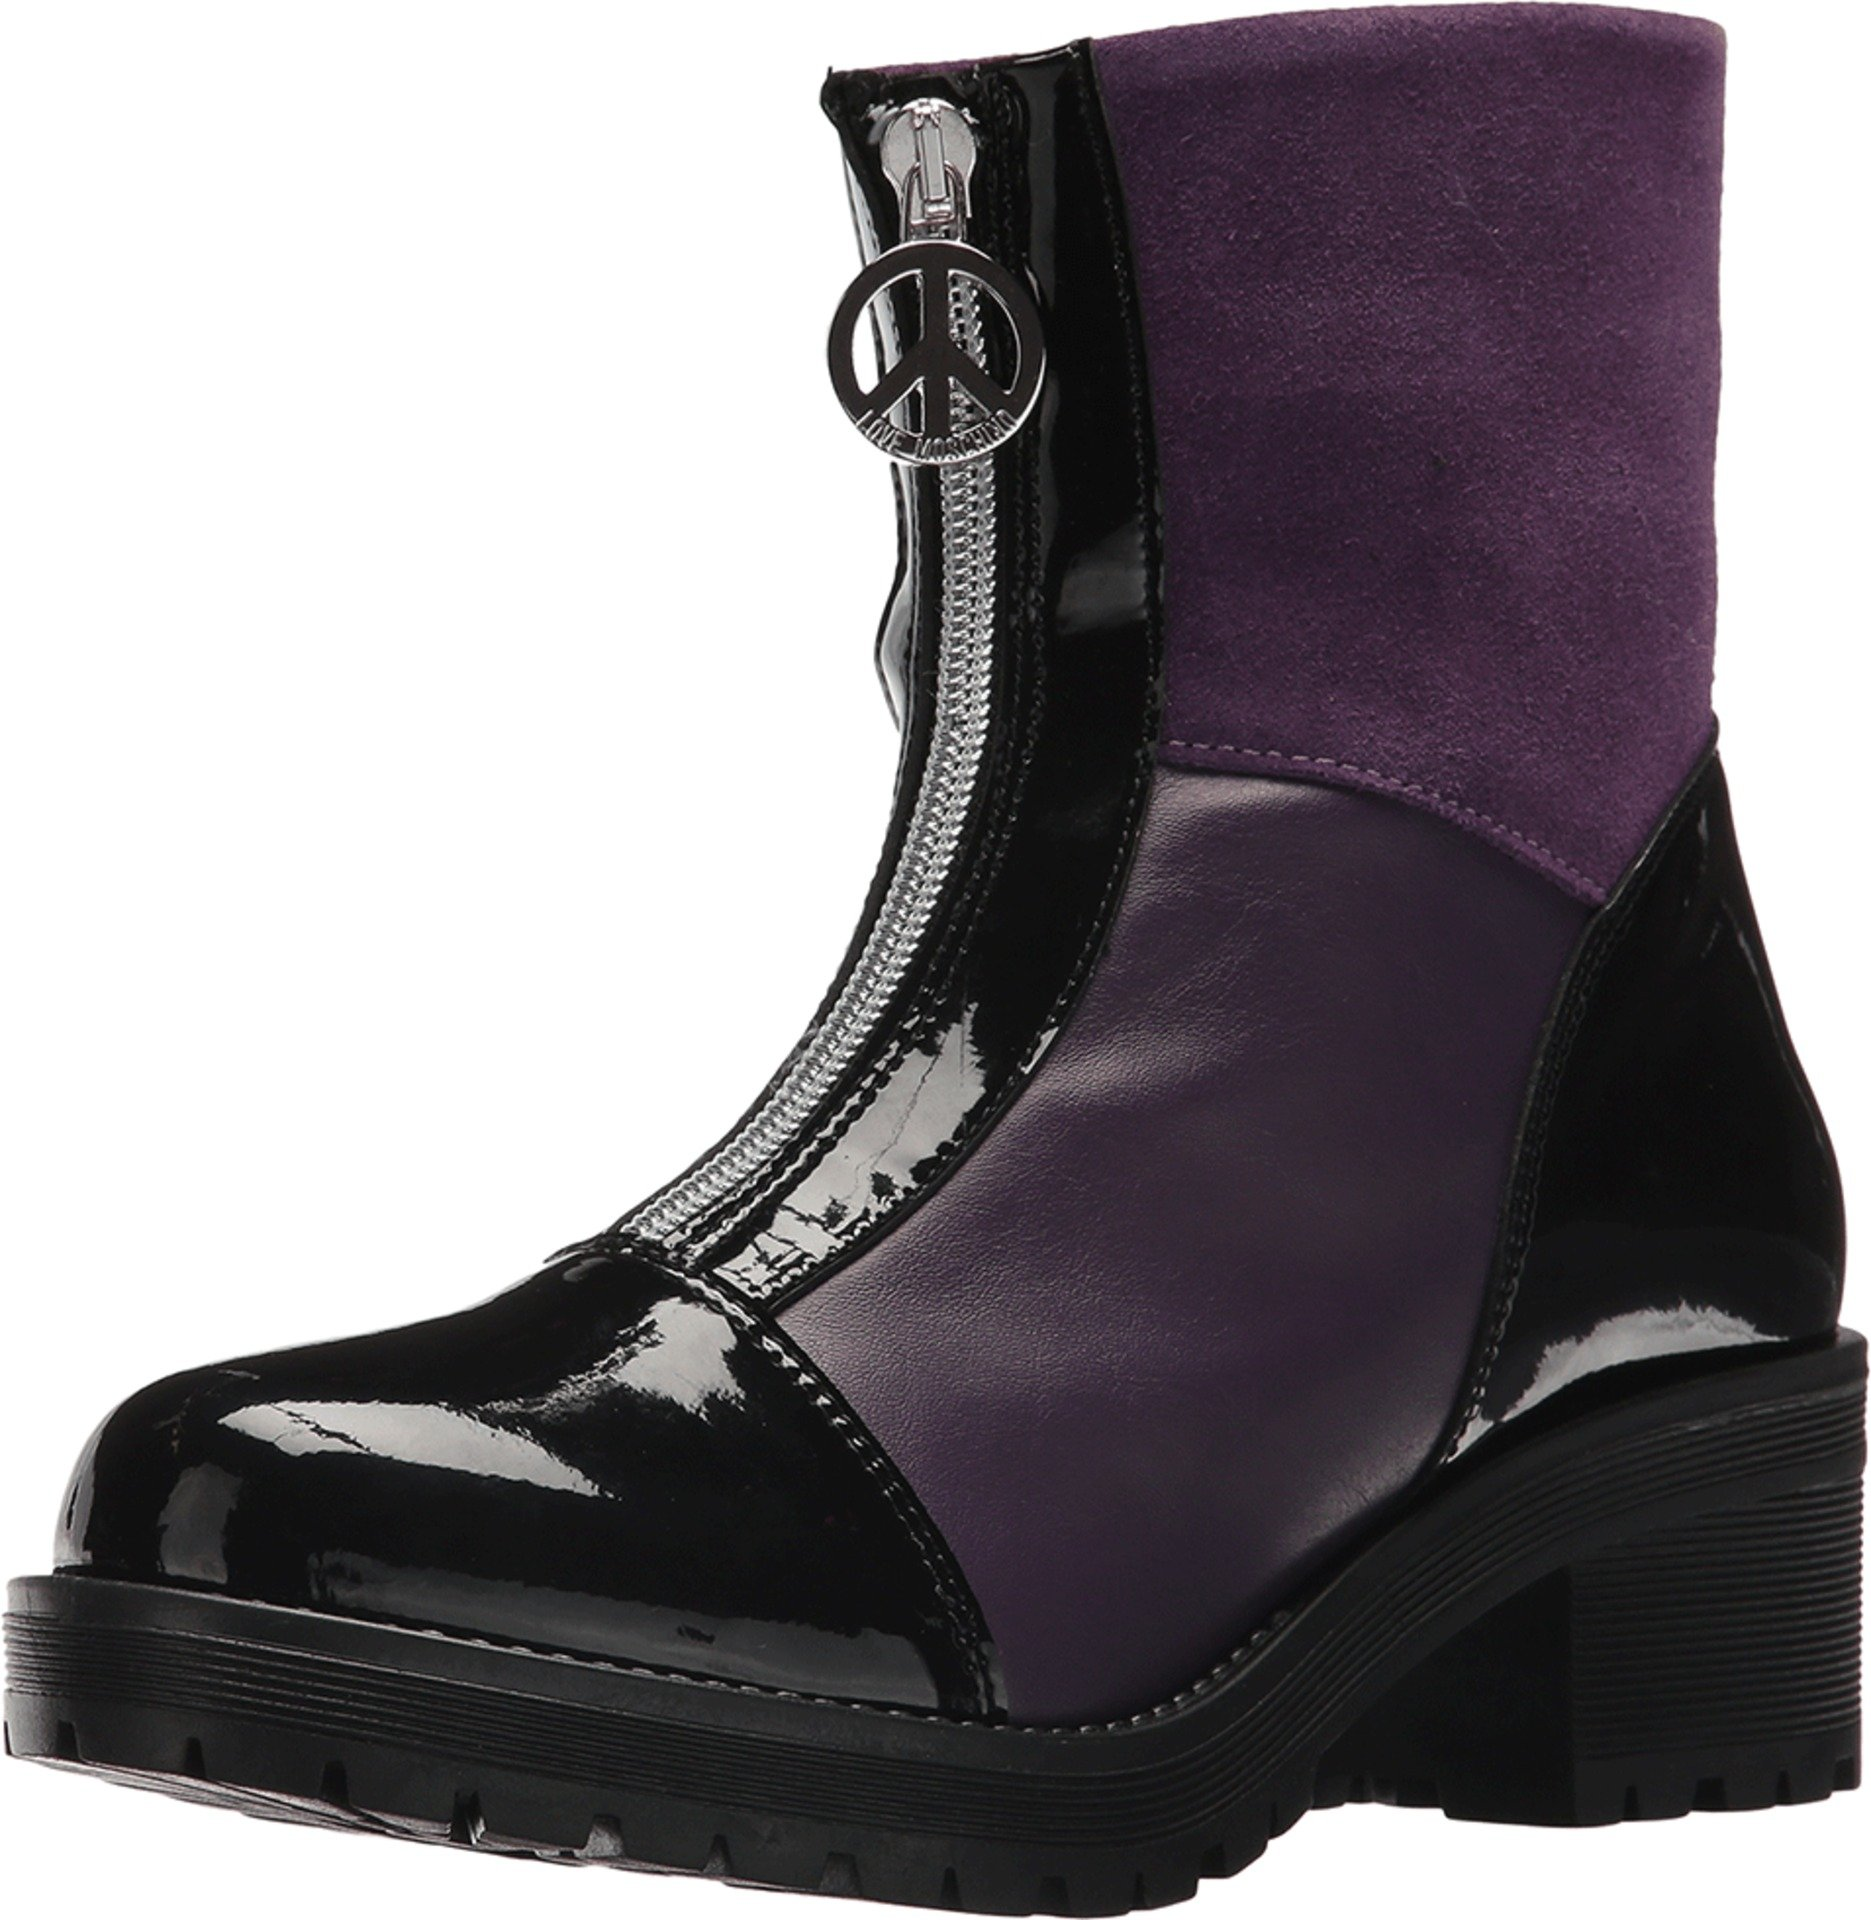 Love Moschino Women's JA24155G04JB165A Ankle Boot, Violet, 37 M EU (7 US)